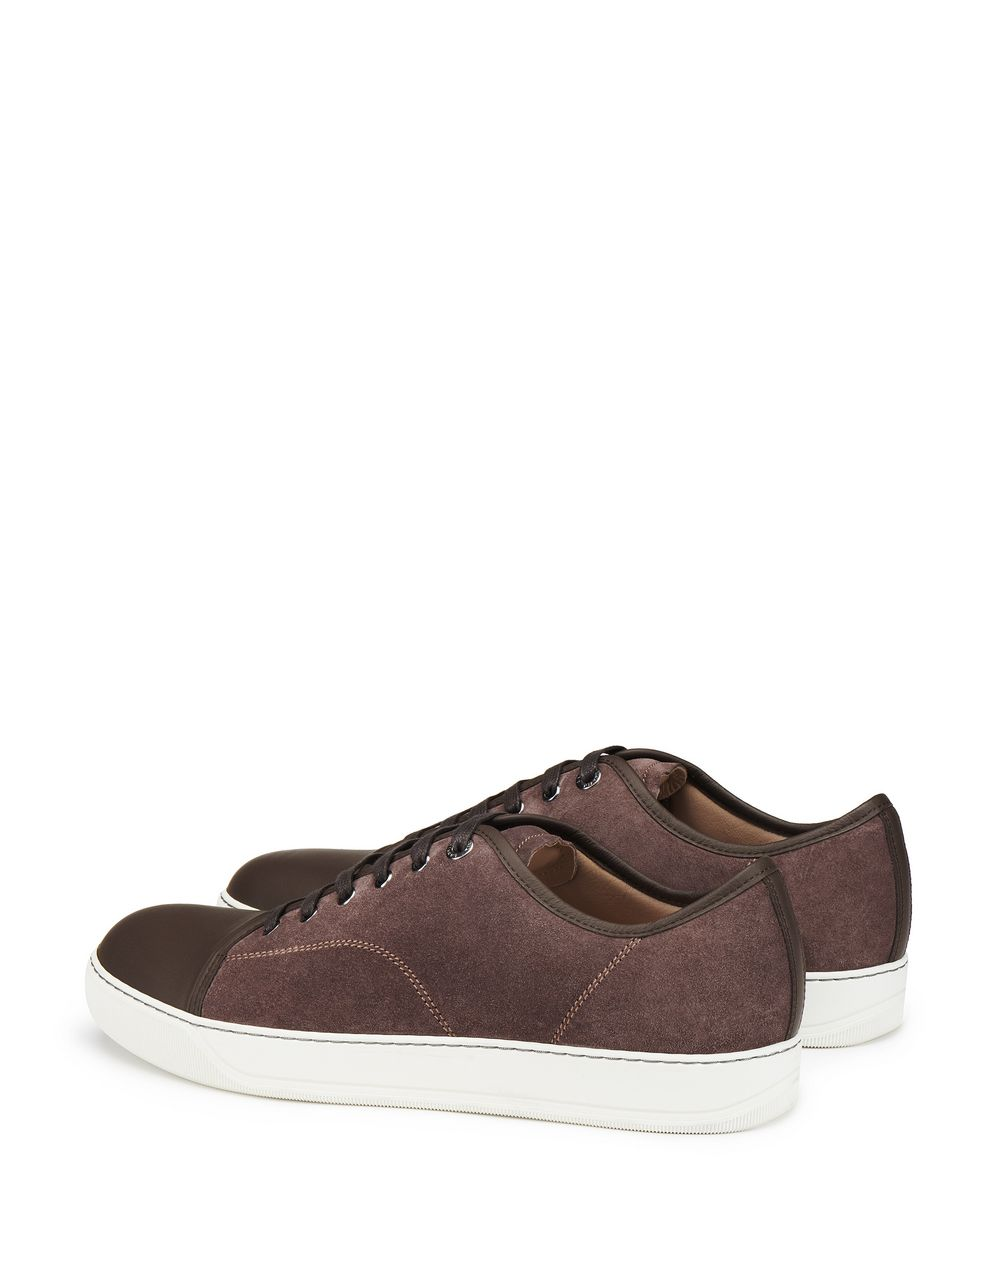 DBB1 CLAY-COLORED SUEDE CALFSKIN SNEAKER - Lanvin